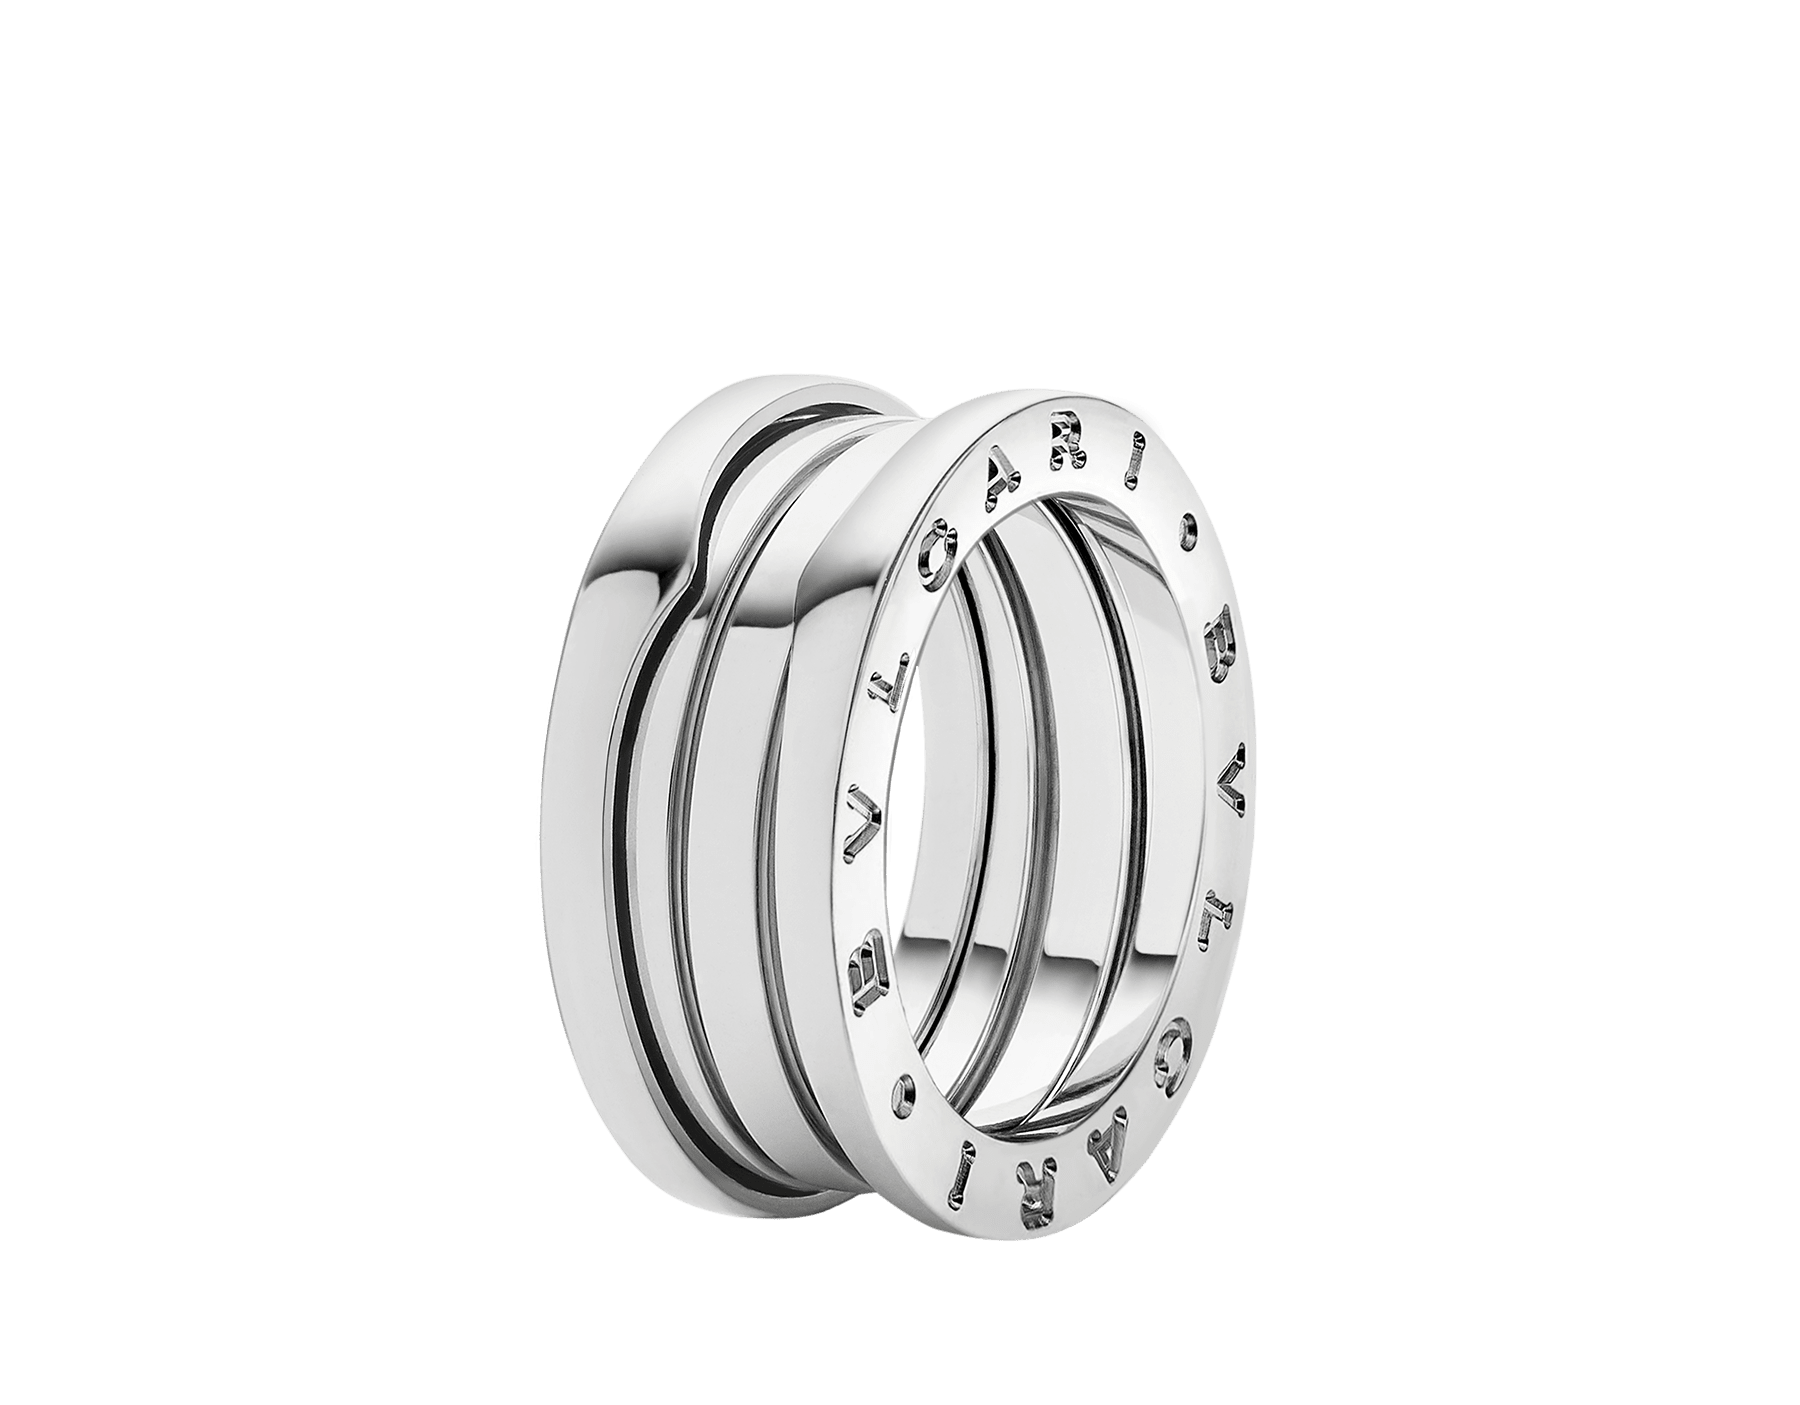 B.zero1 three-band ring in 18 kt white gold. B-zero1-3-bands-AN191024 image 1